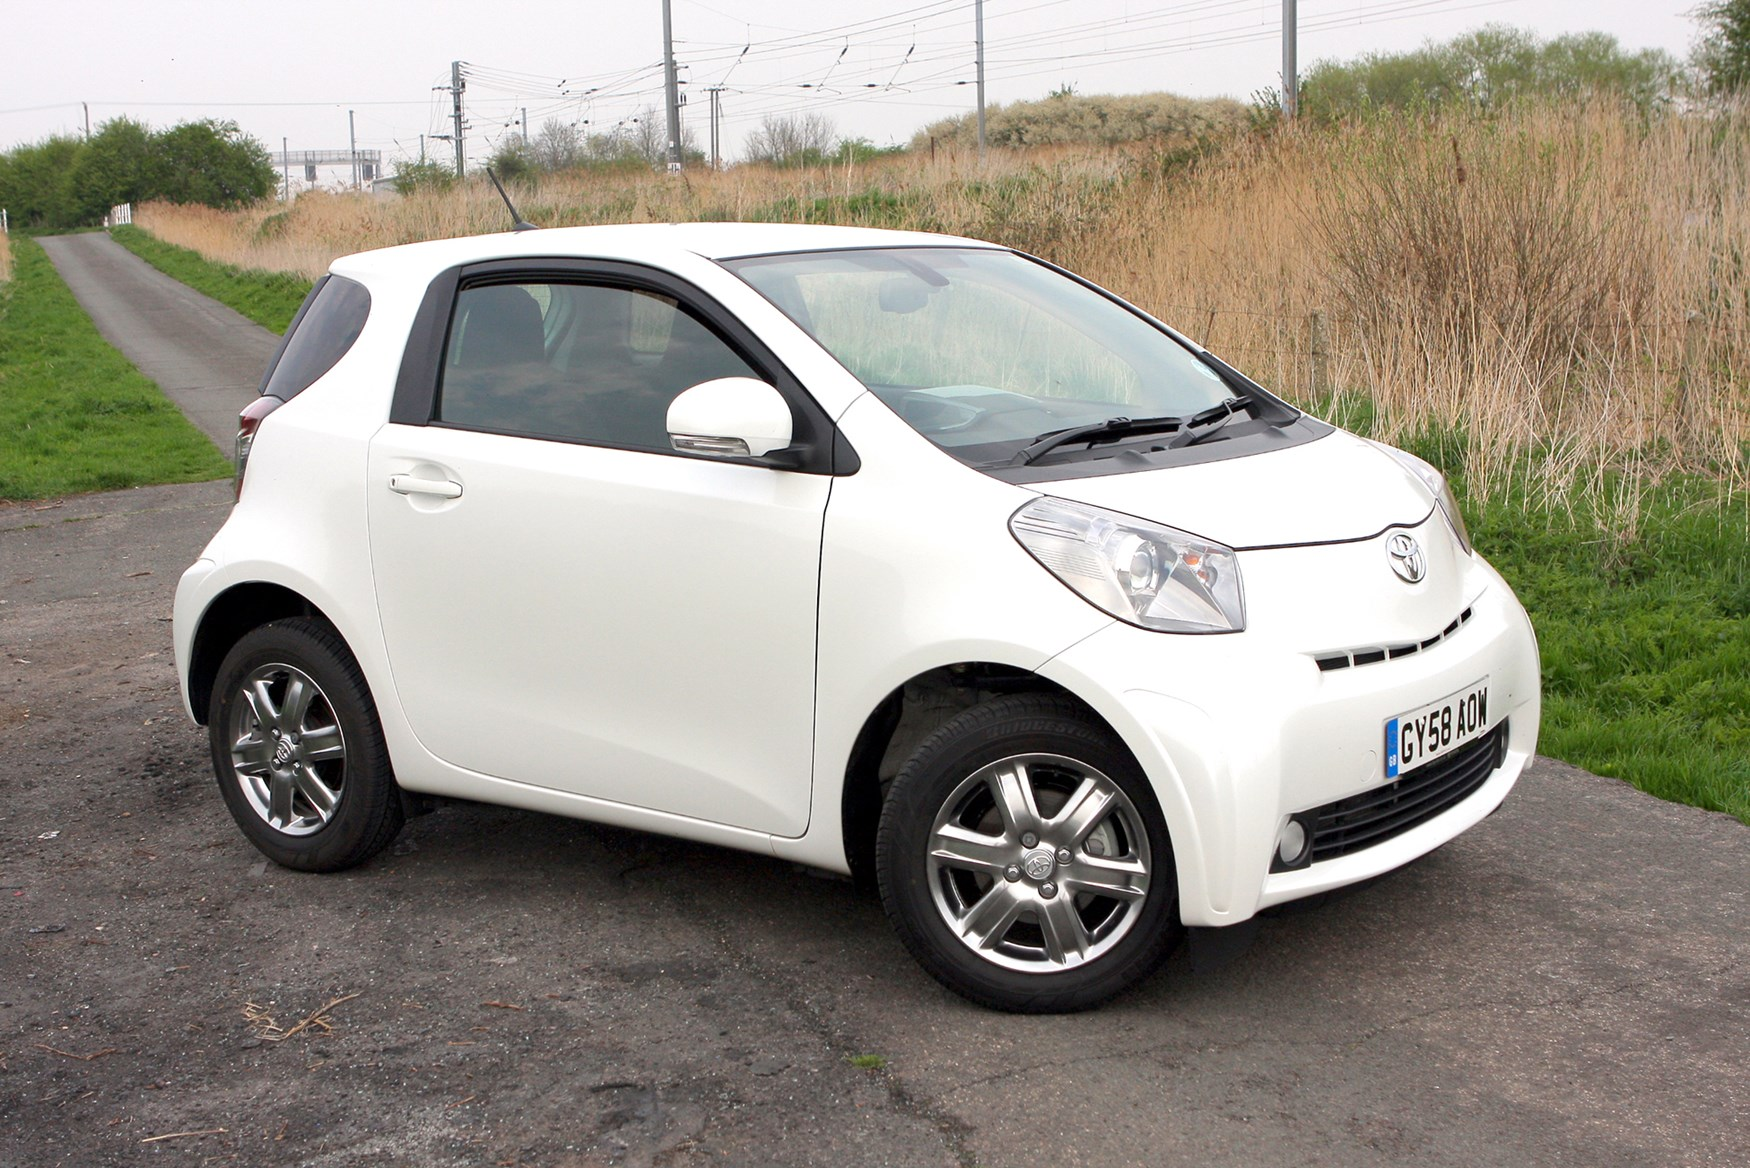 Cheap Cars For Sale >> Toyota IQ Hatchback Review (2009 - 2014) | Parkers